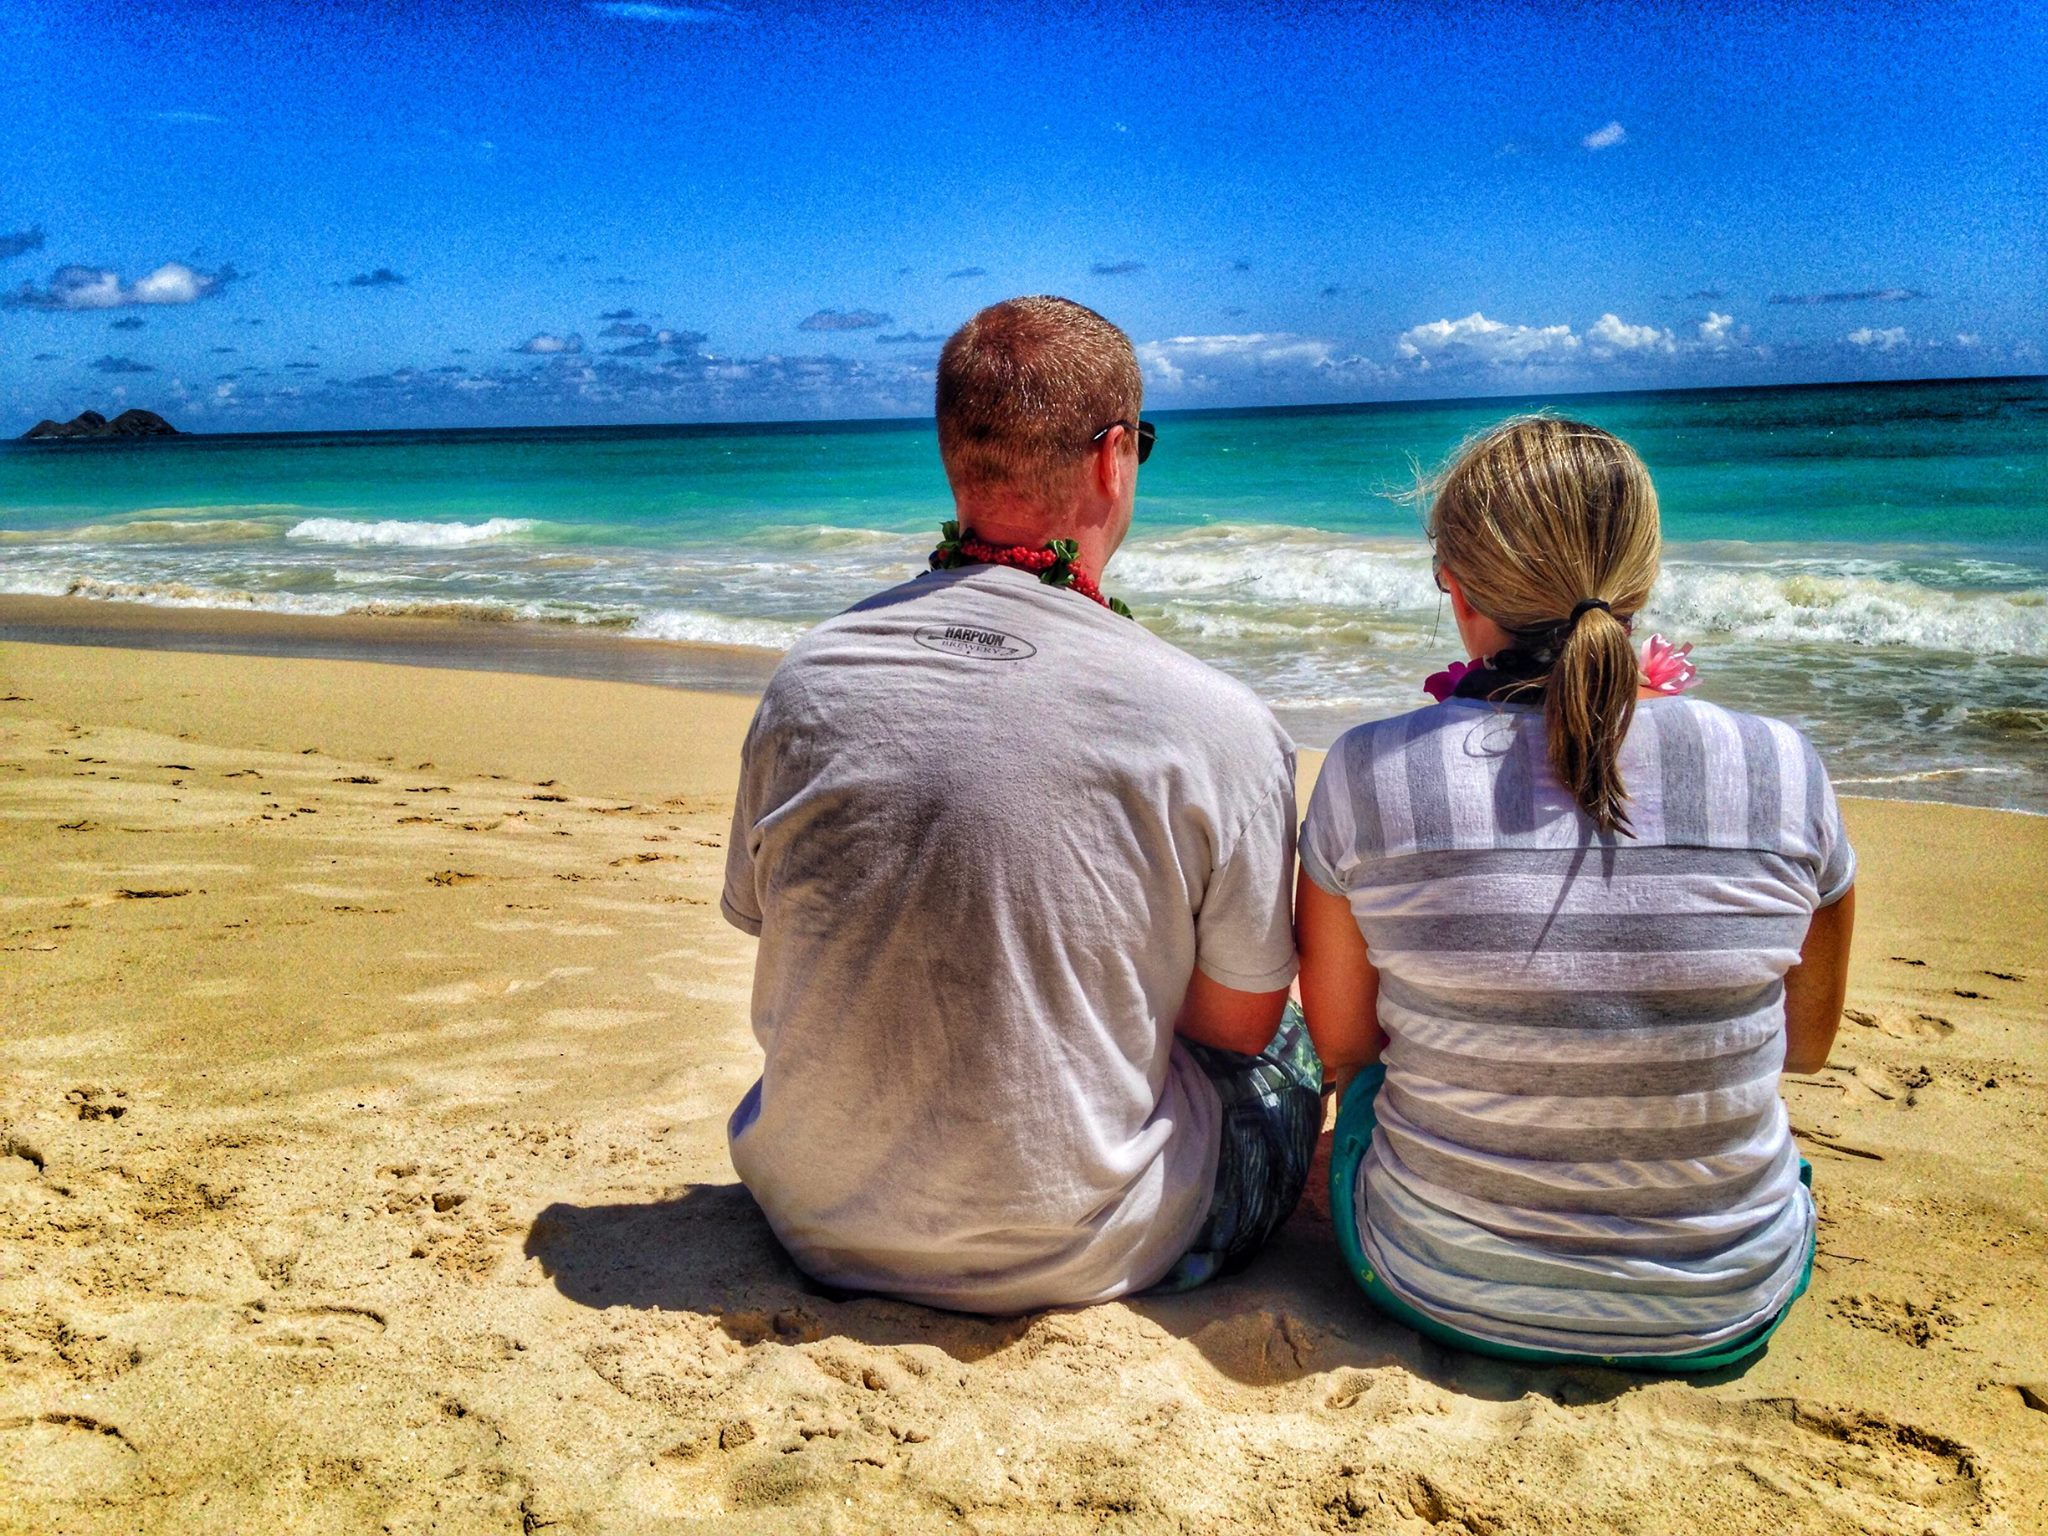 couple on a Hawaii beach looking out at the ocean